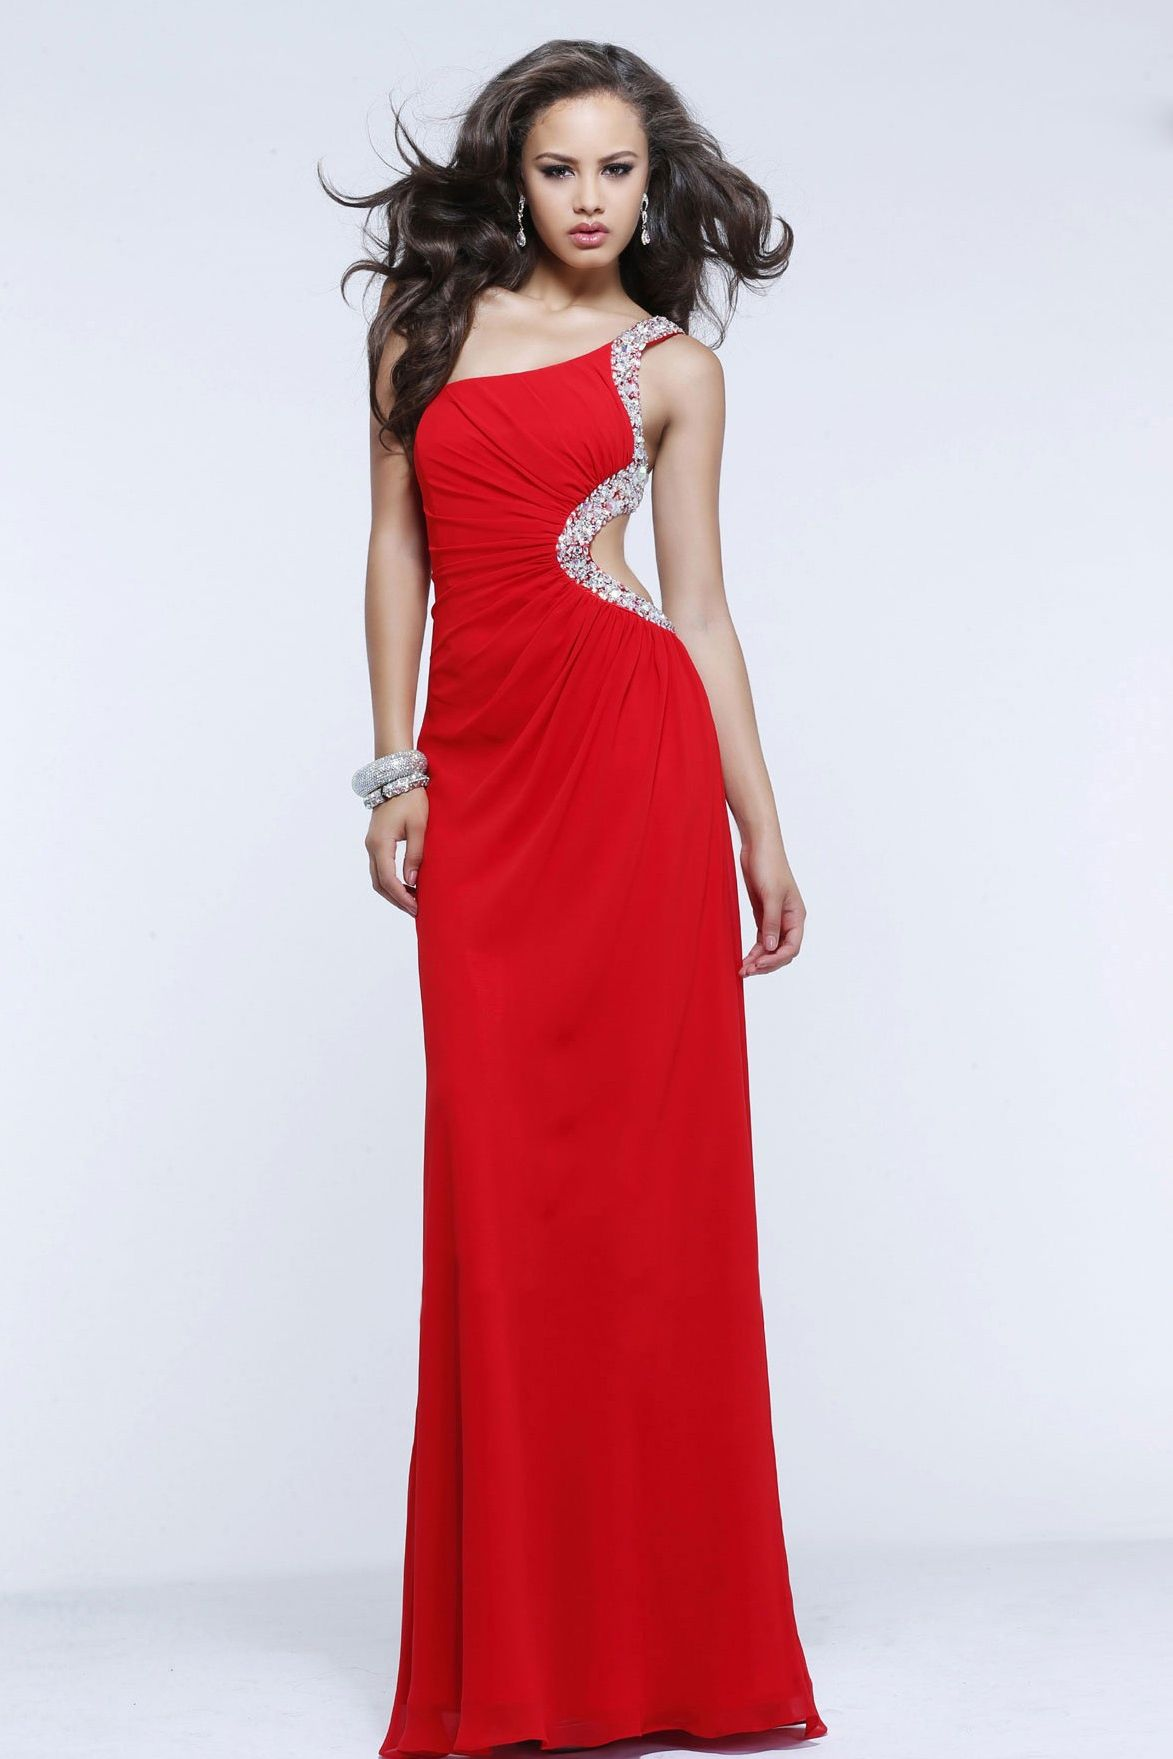 17 Best images about Amazing Red Formal Dresses Ideas on Pinterest ...